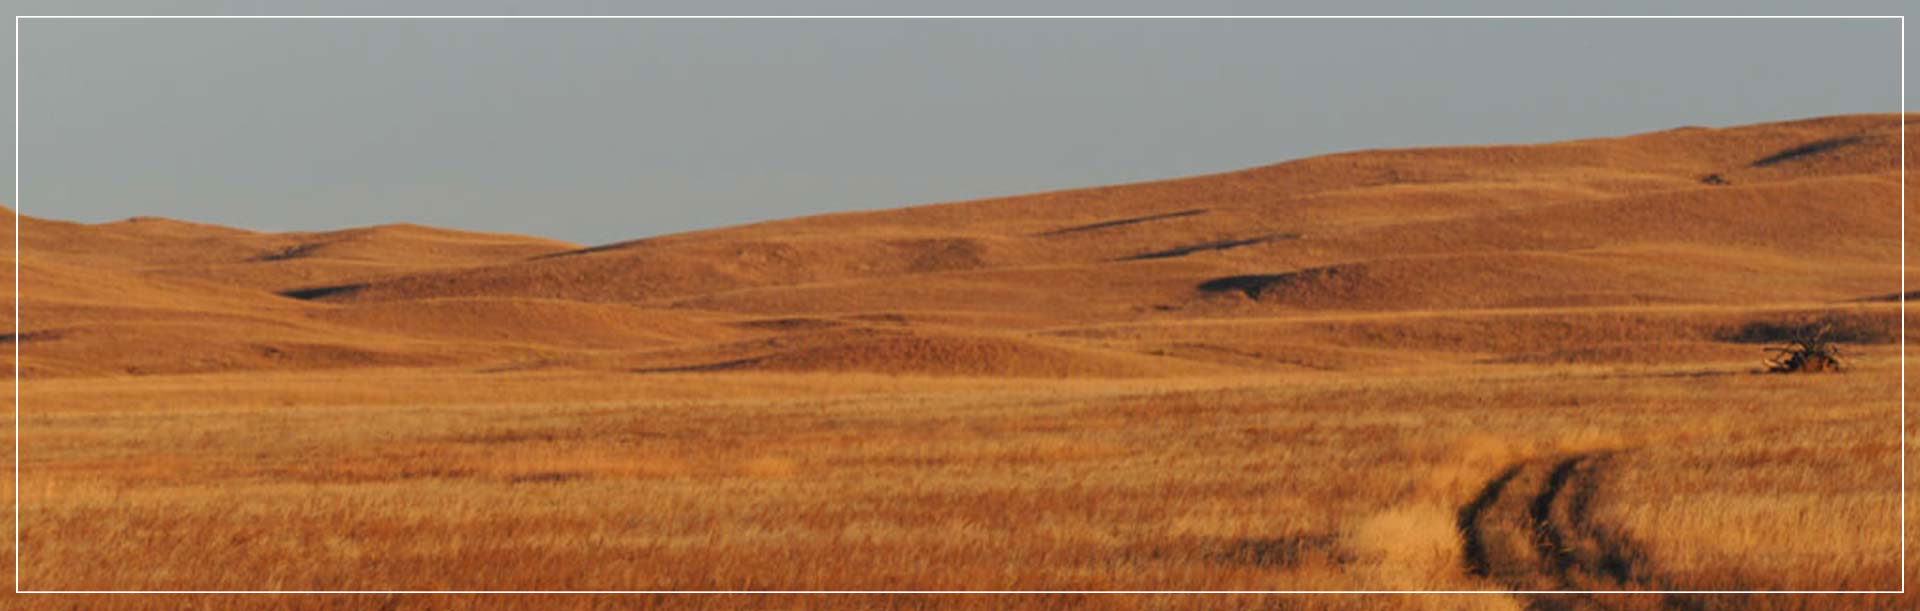 The Nebraska Sandhills